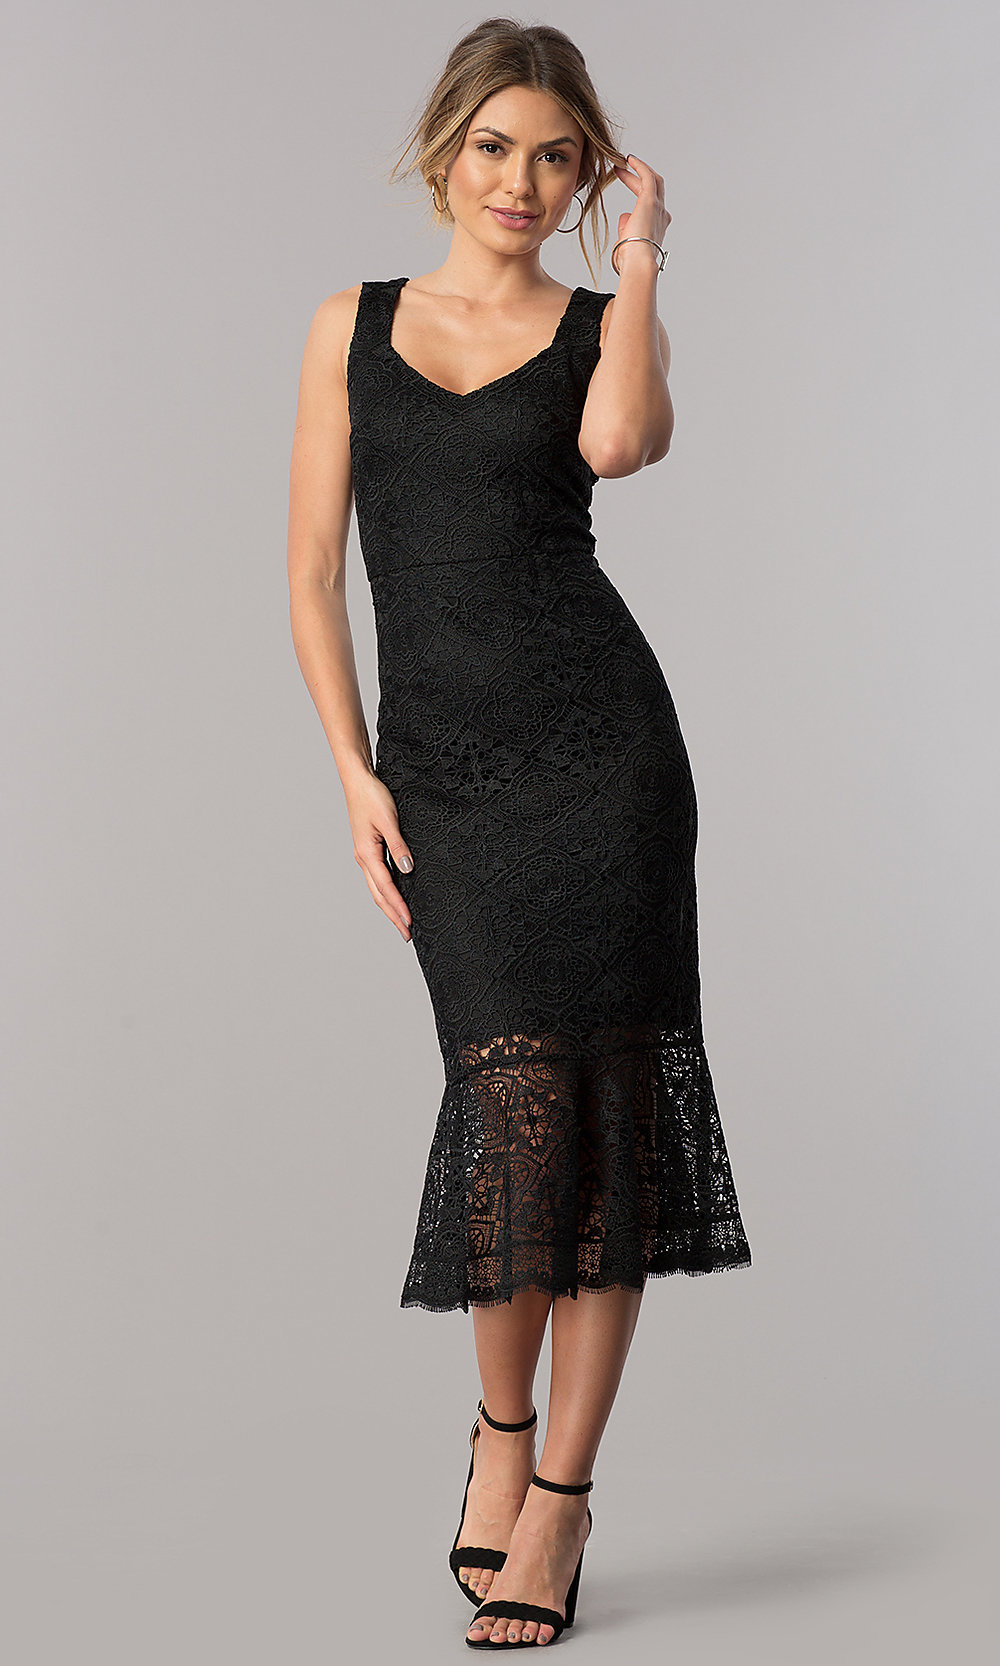 Midi Black Lace Wedding Guest Party Sheath Dress